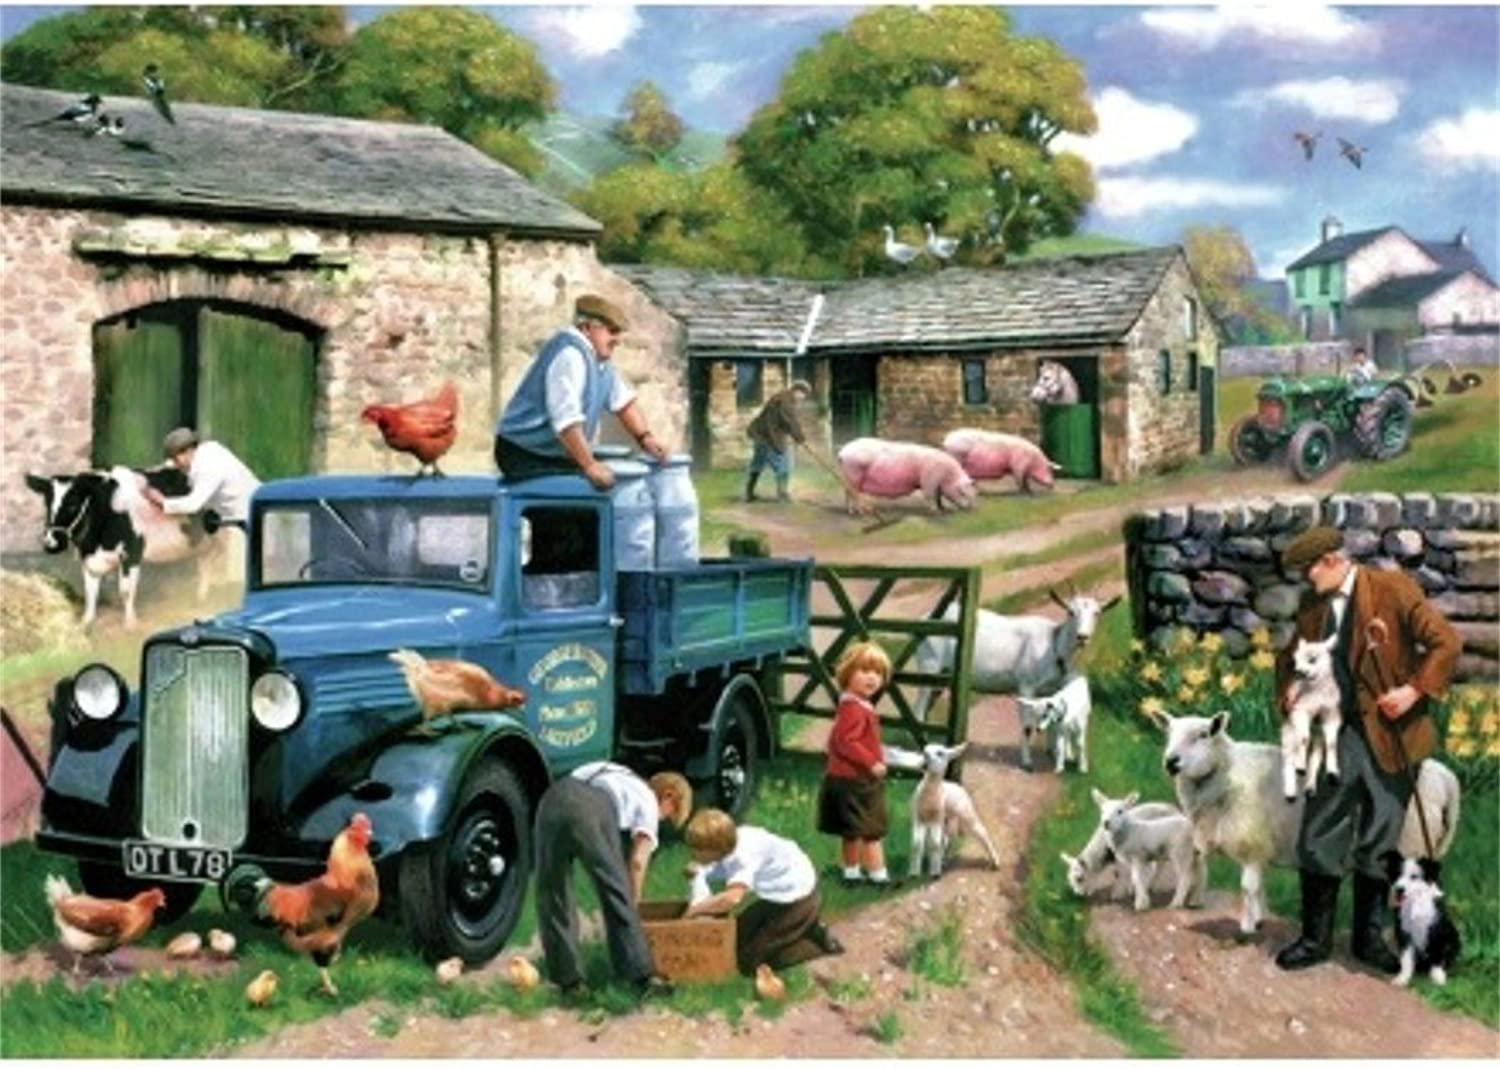 Wentworth Spring Farm Wooden 250 Piece Jigsaw Puzzle 442408 9.8 Inches x 14.17 Inches